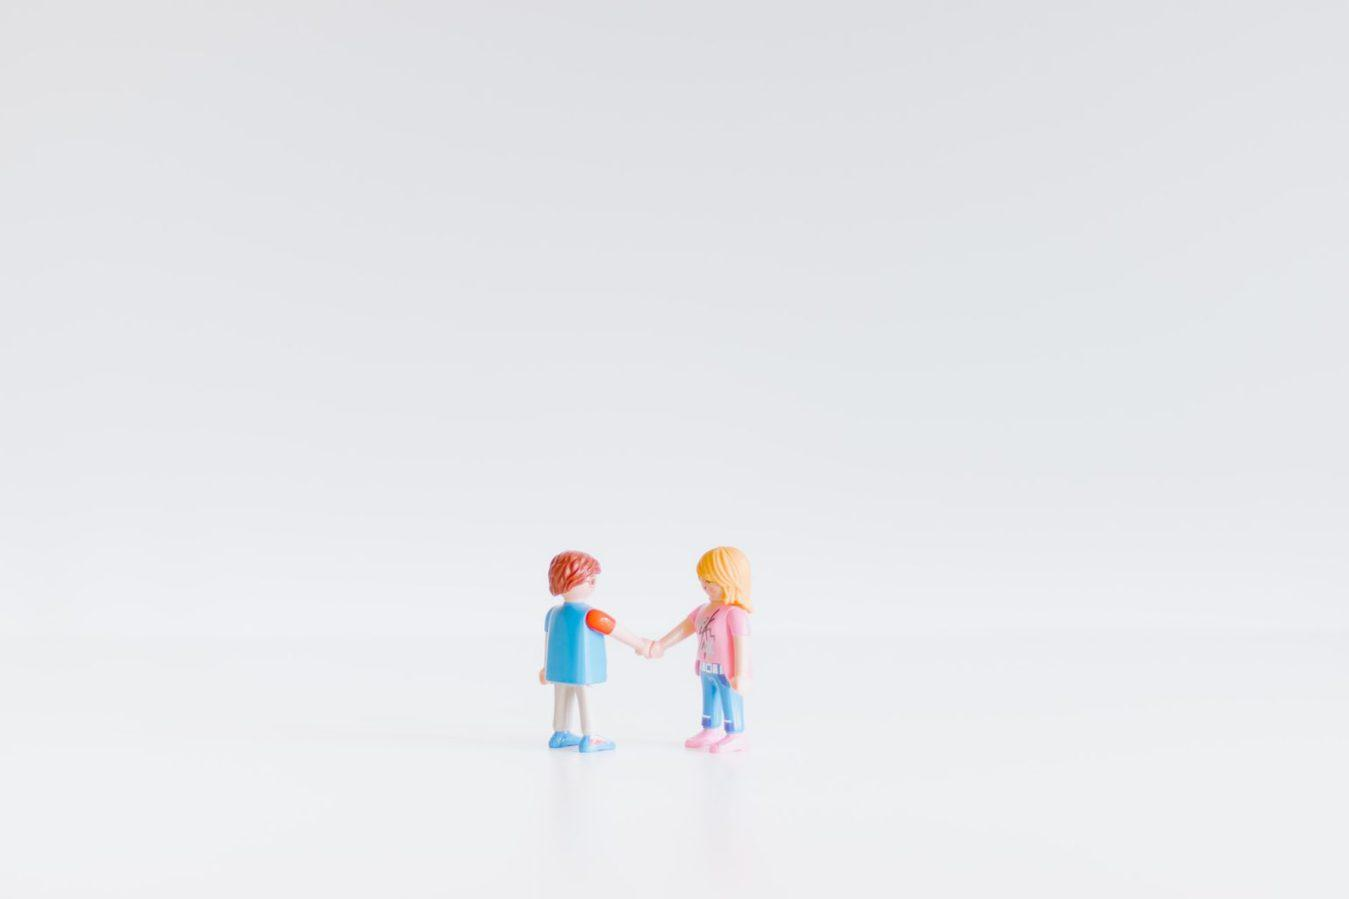 Two toy figurines shaking hands